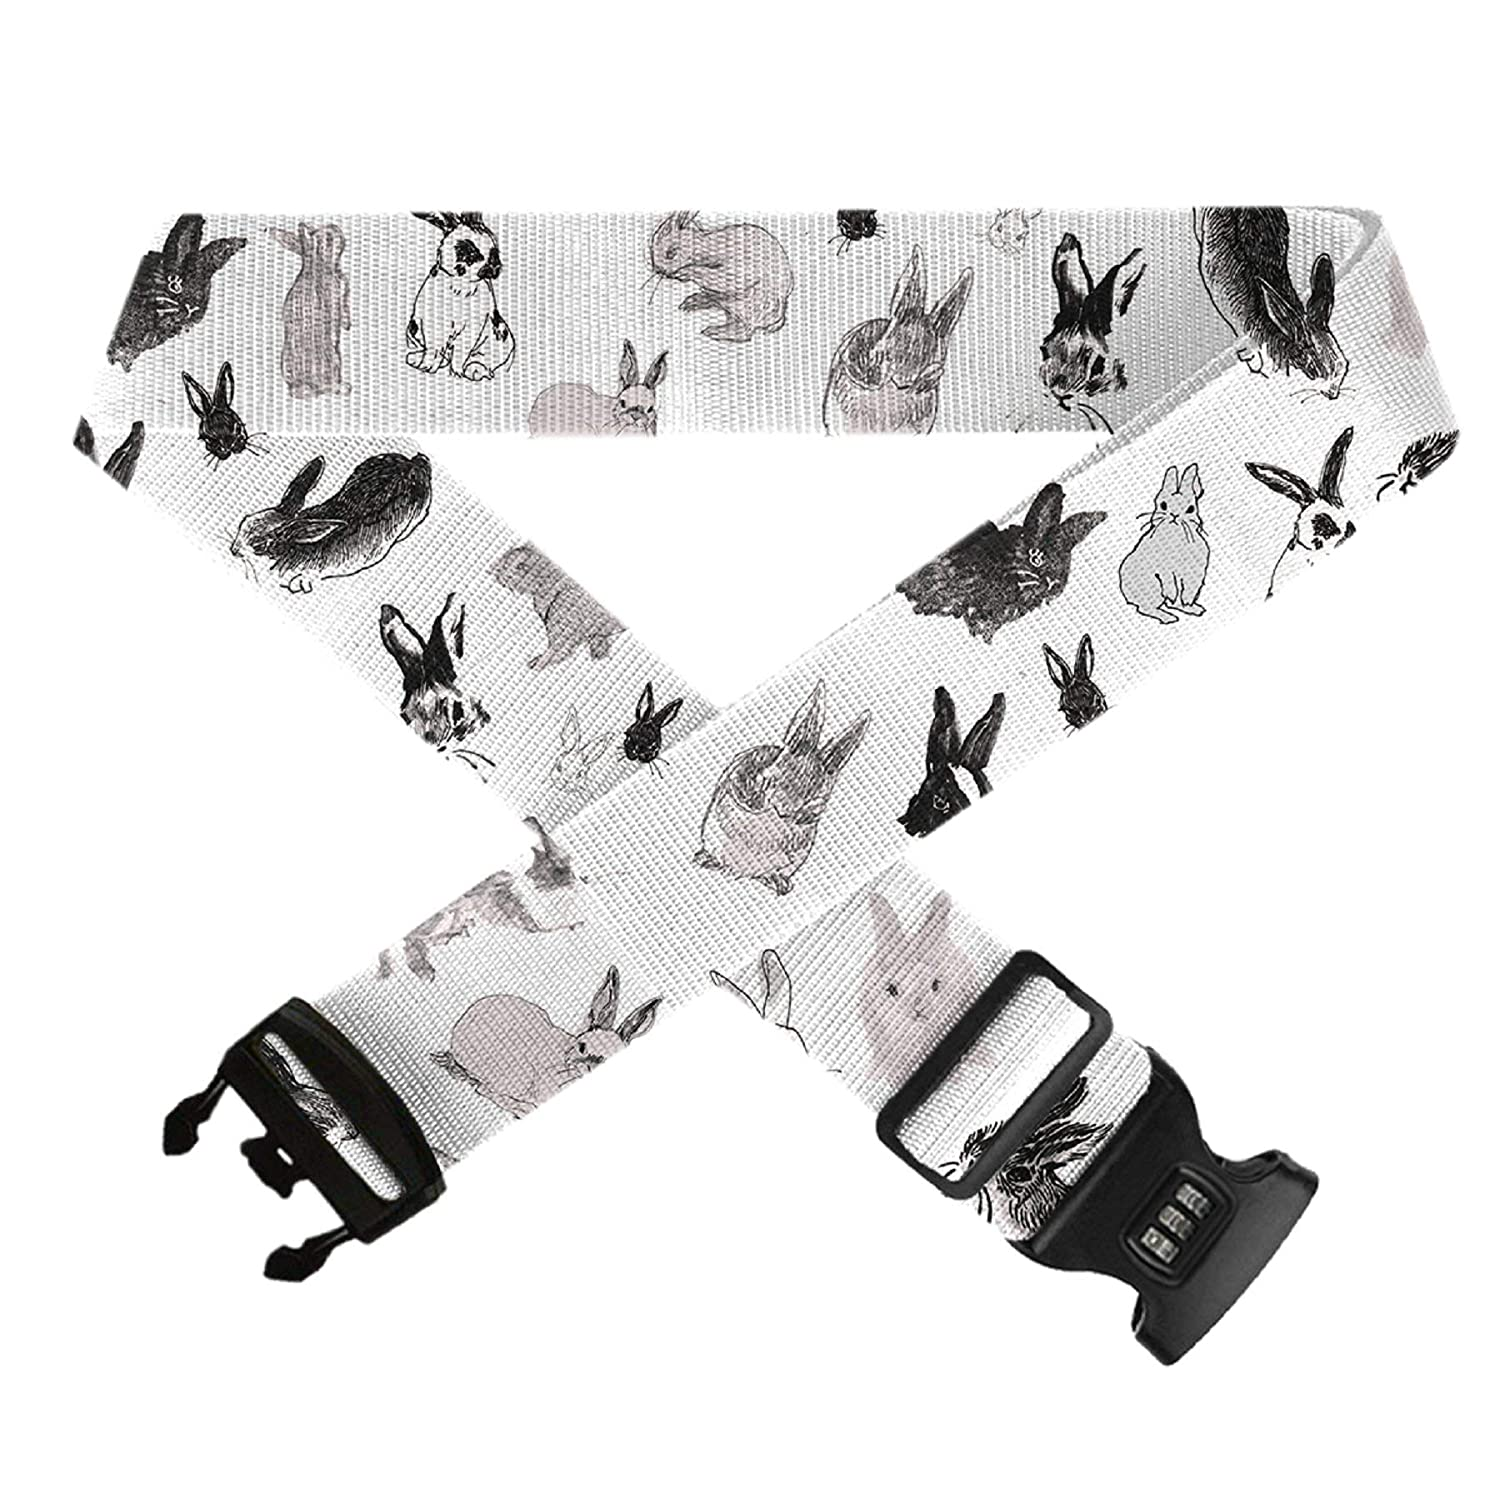 1 Pack Funny Rabbit,Heavy Duty Bag Straps 3 Dial Approved Lock for Extra Luggage//Travel//Business GLORY ART Suitcase Belt Straps